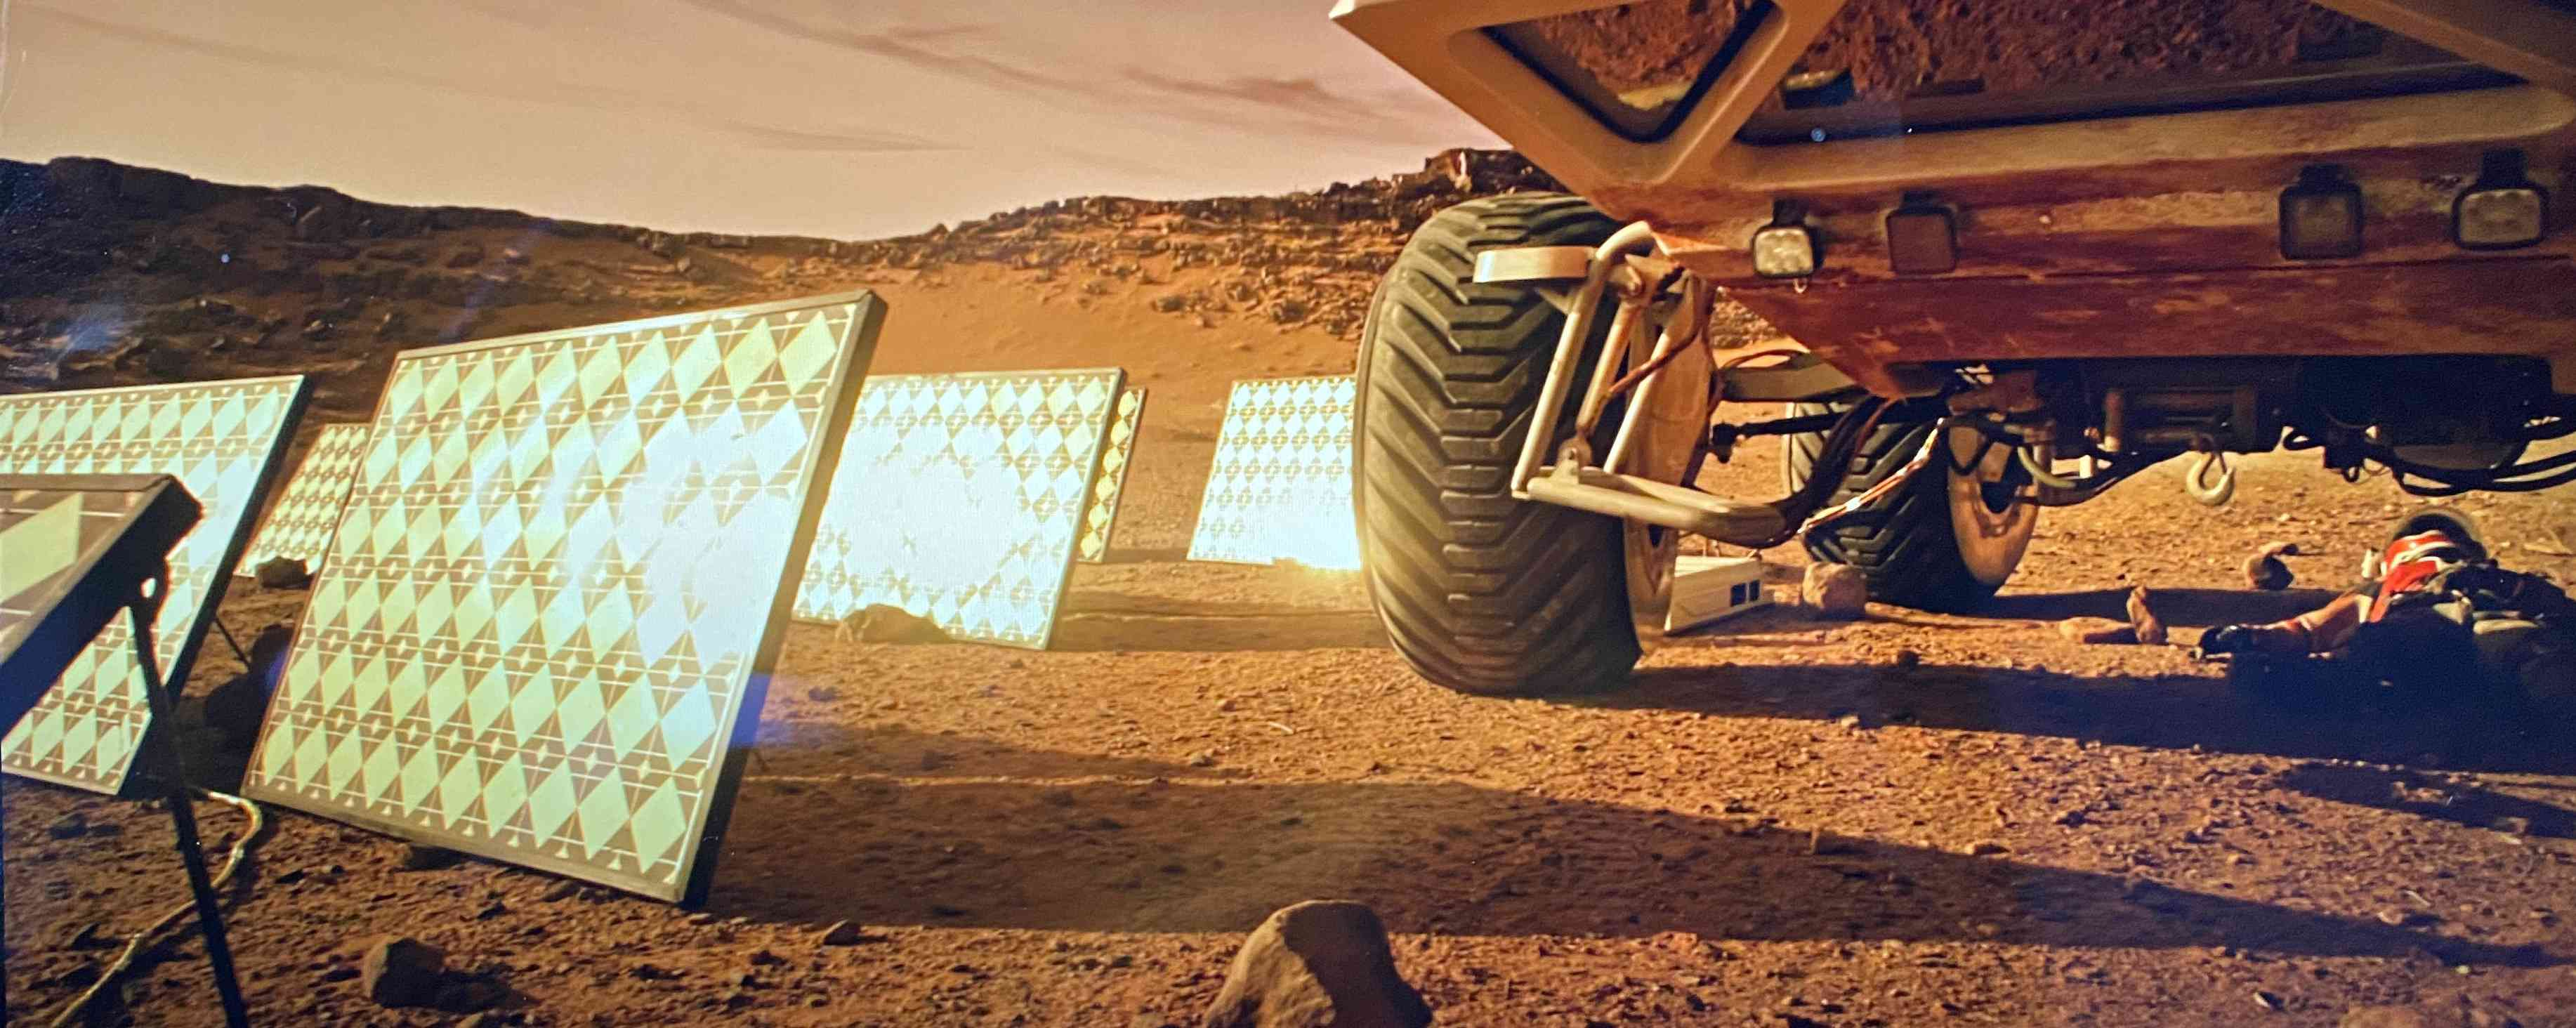 Charging rover on Mars